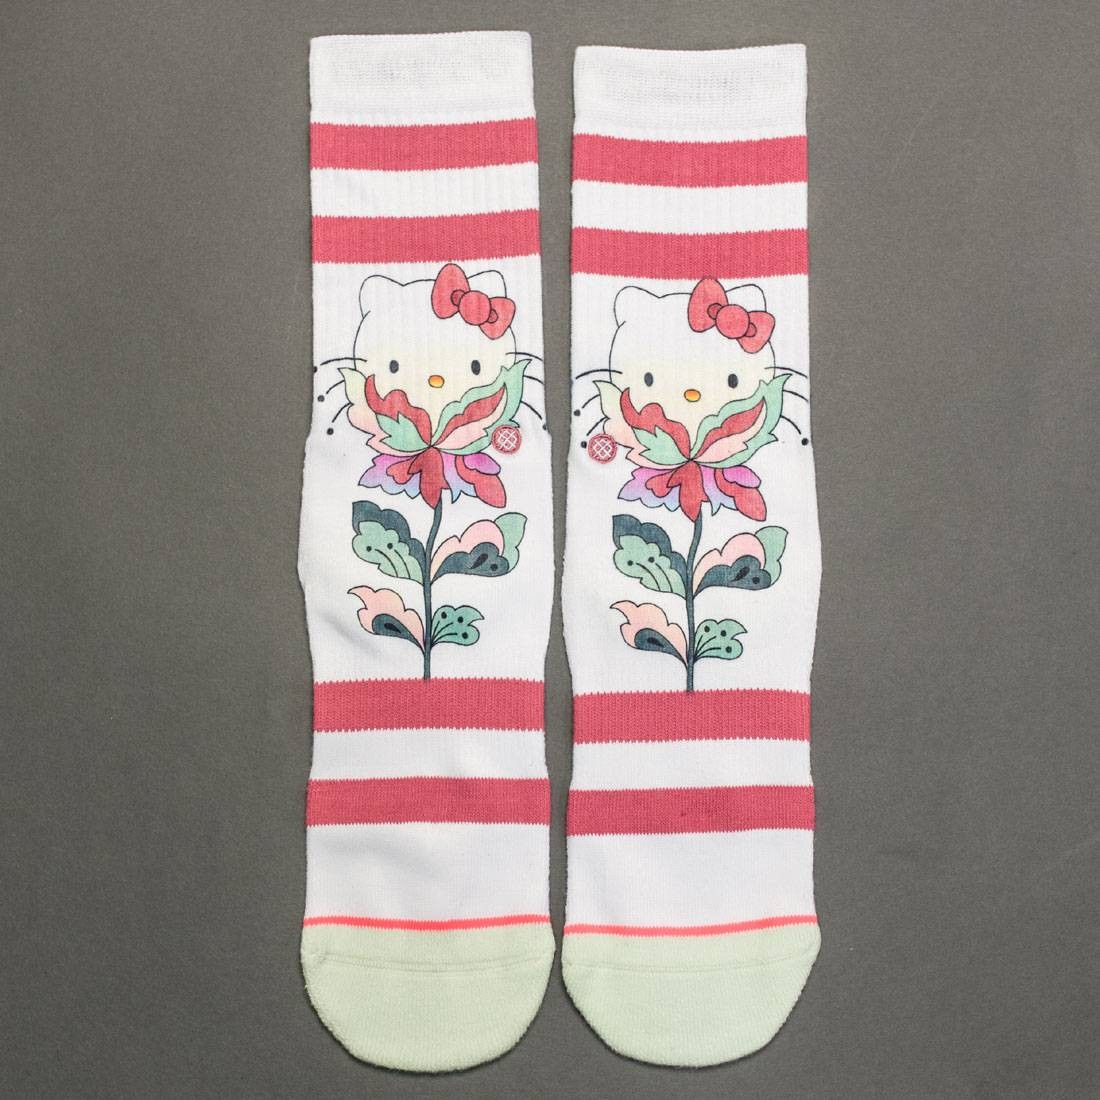 f2f317b69 Stance x Hello Kitty Women Full Bloom Socks multi